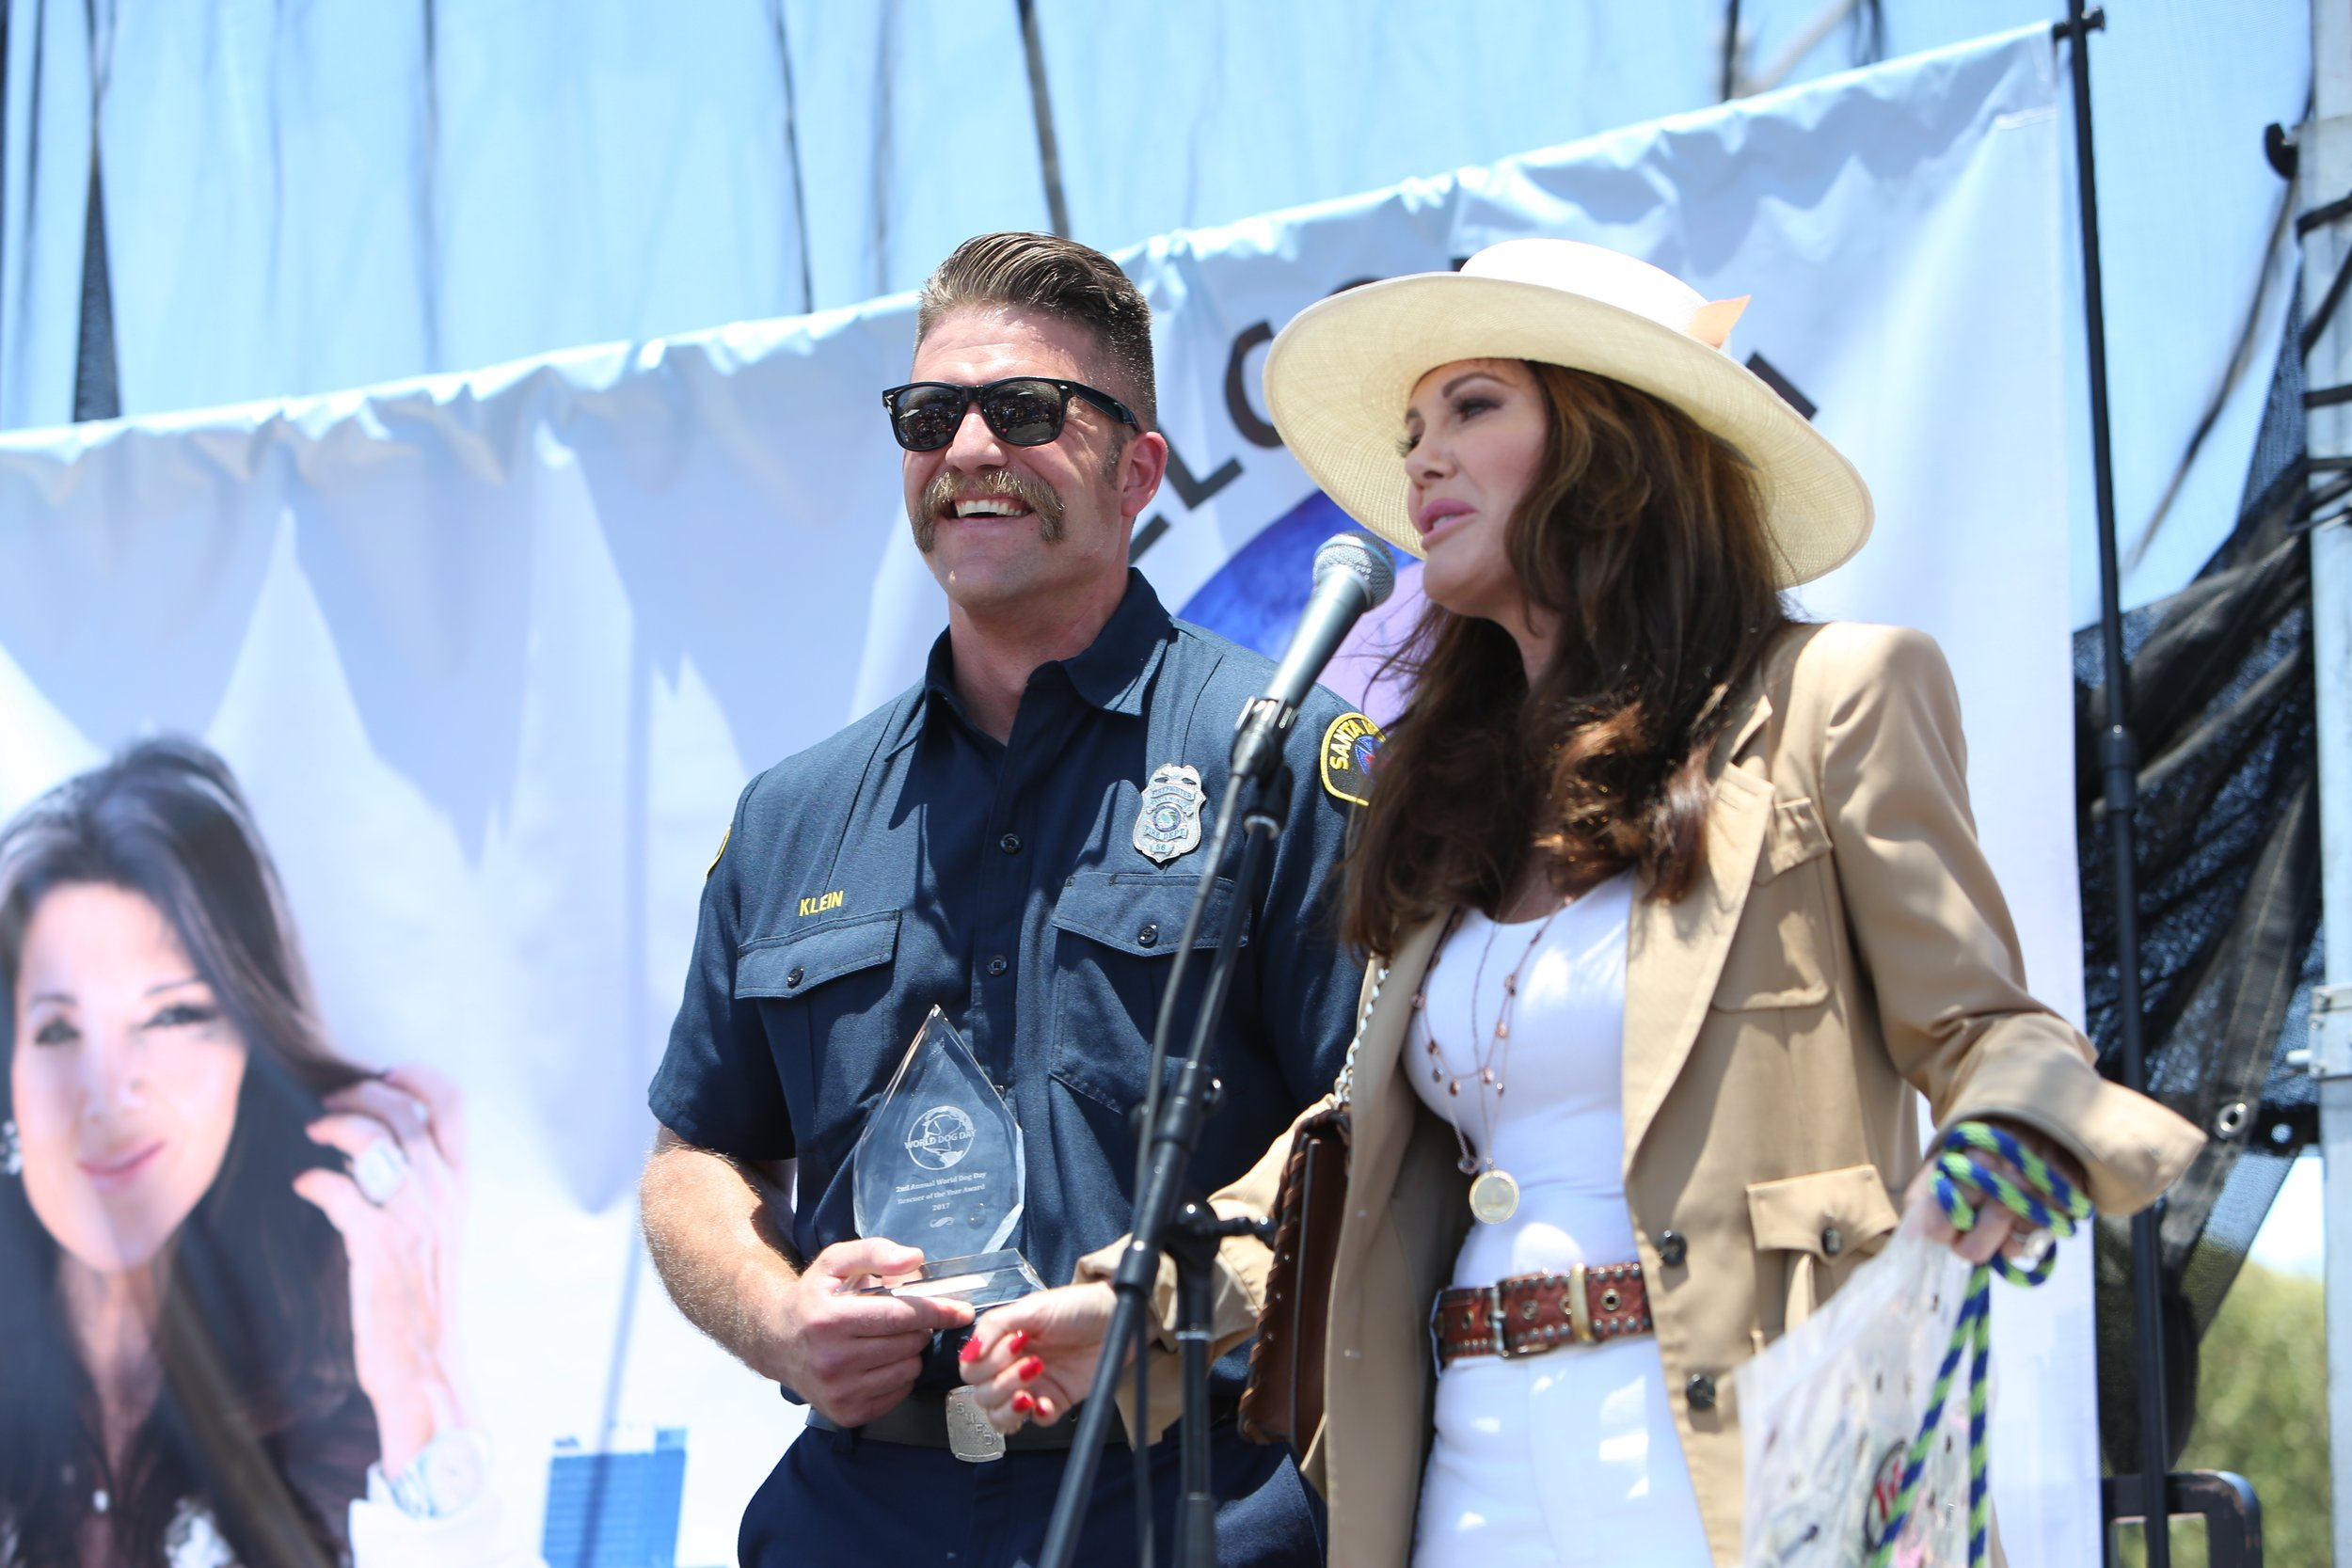 """""""I was also honored to meet and recognize firefighter Andrew Klein who rescued and gave CPR to a dog who had been trapped in a burning building,"""" Lisa Vanderpump said when presenting him with the """"Vanderpump Dog Foundation Hero Award."""""""